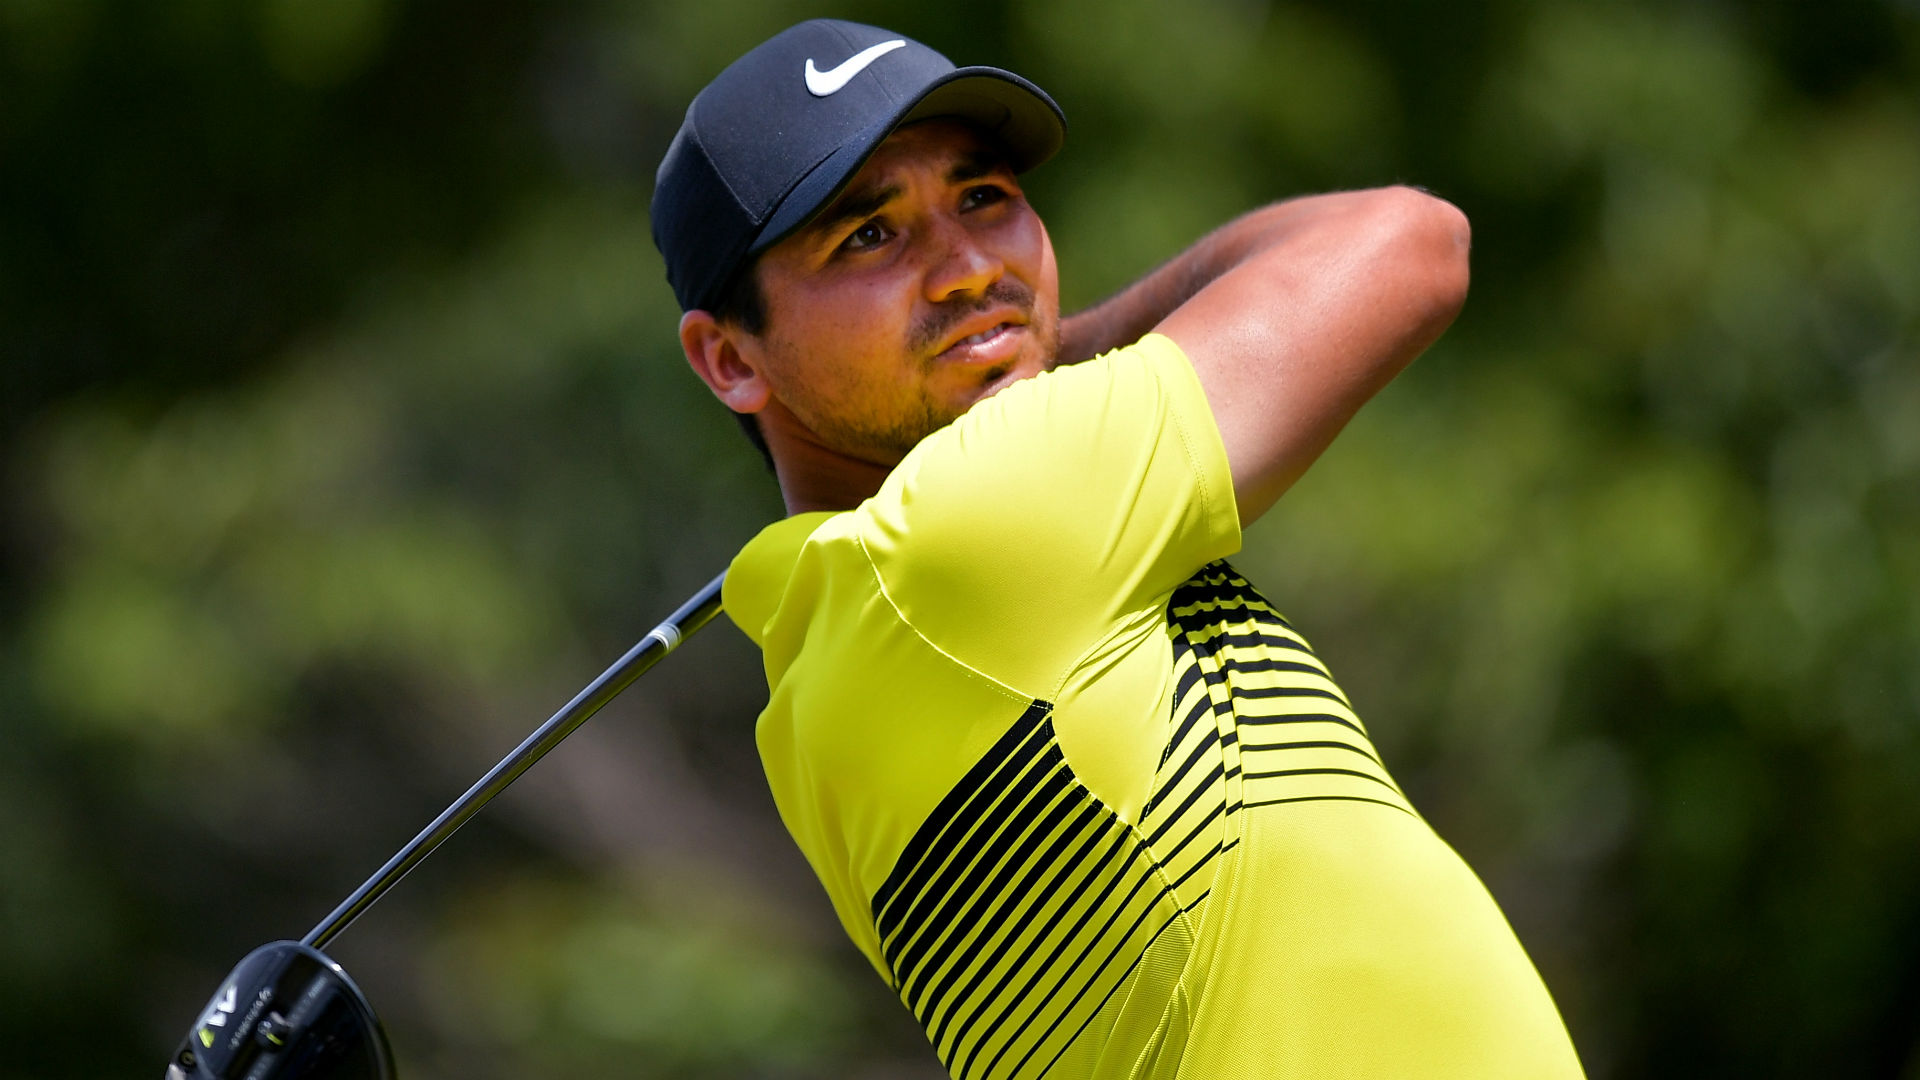 Jason Day was 'burnt out' after reaching world No.1